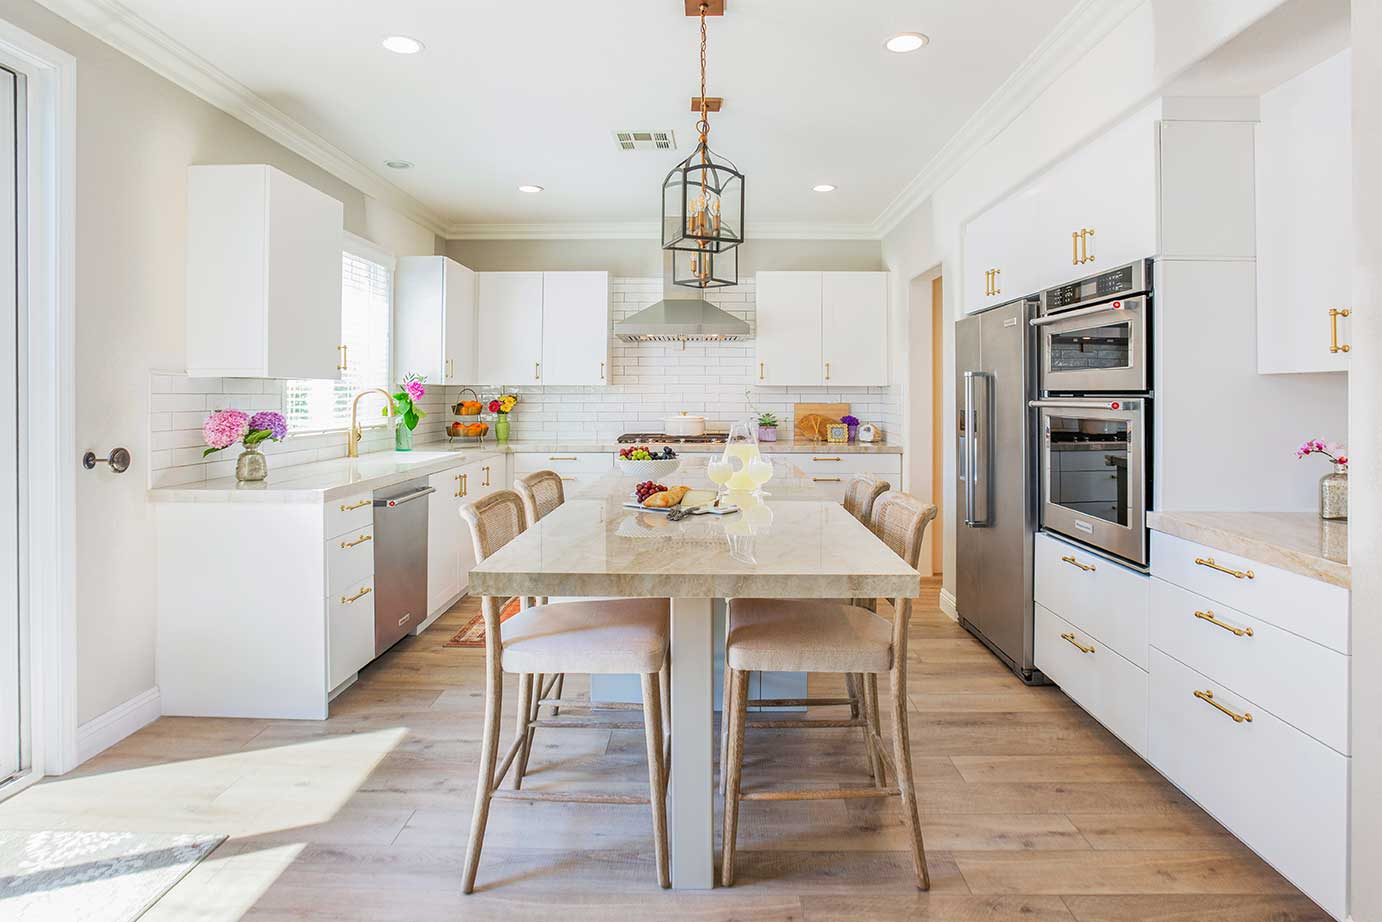 Moya Living Kitchens Combine Durability And Timeless Design